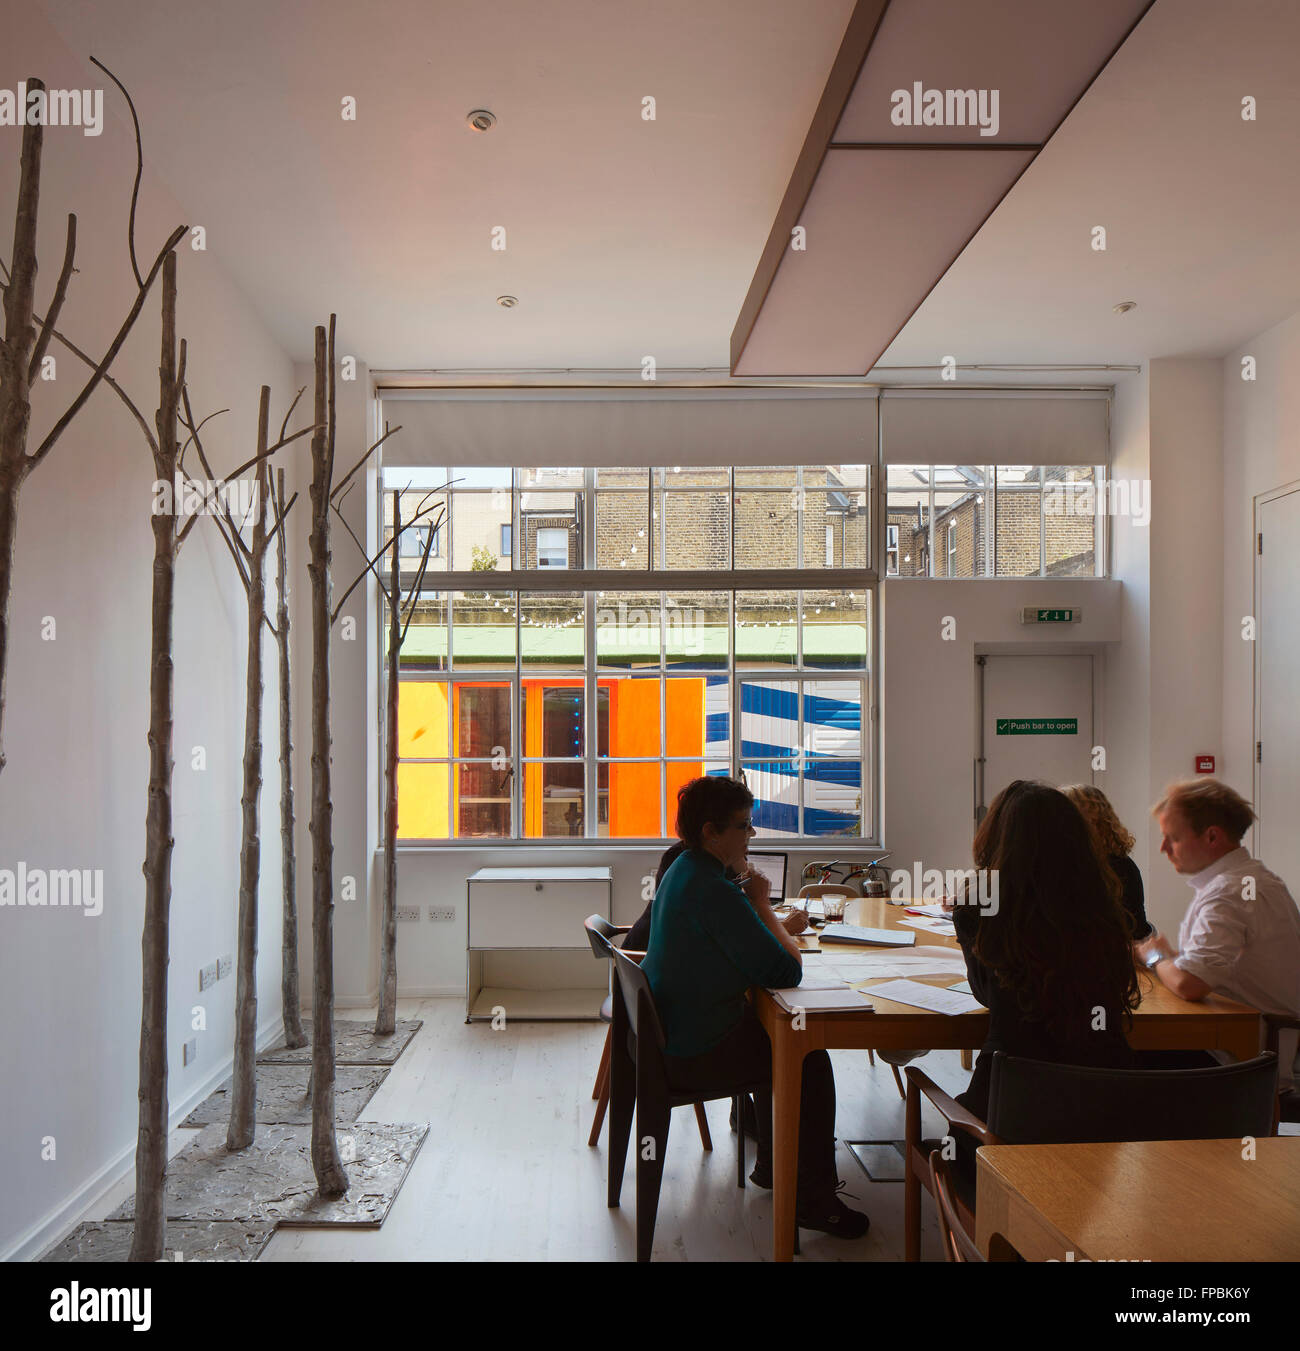 Multifunctional meeting room. DSDHA architectural office, London, United Kingdom. Architect: DSDHA, 2015. - Stock Image